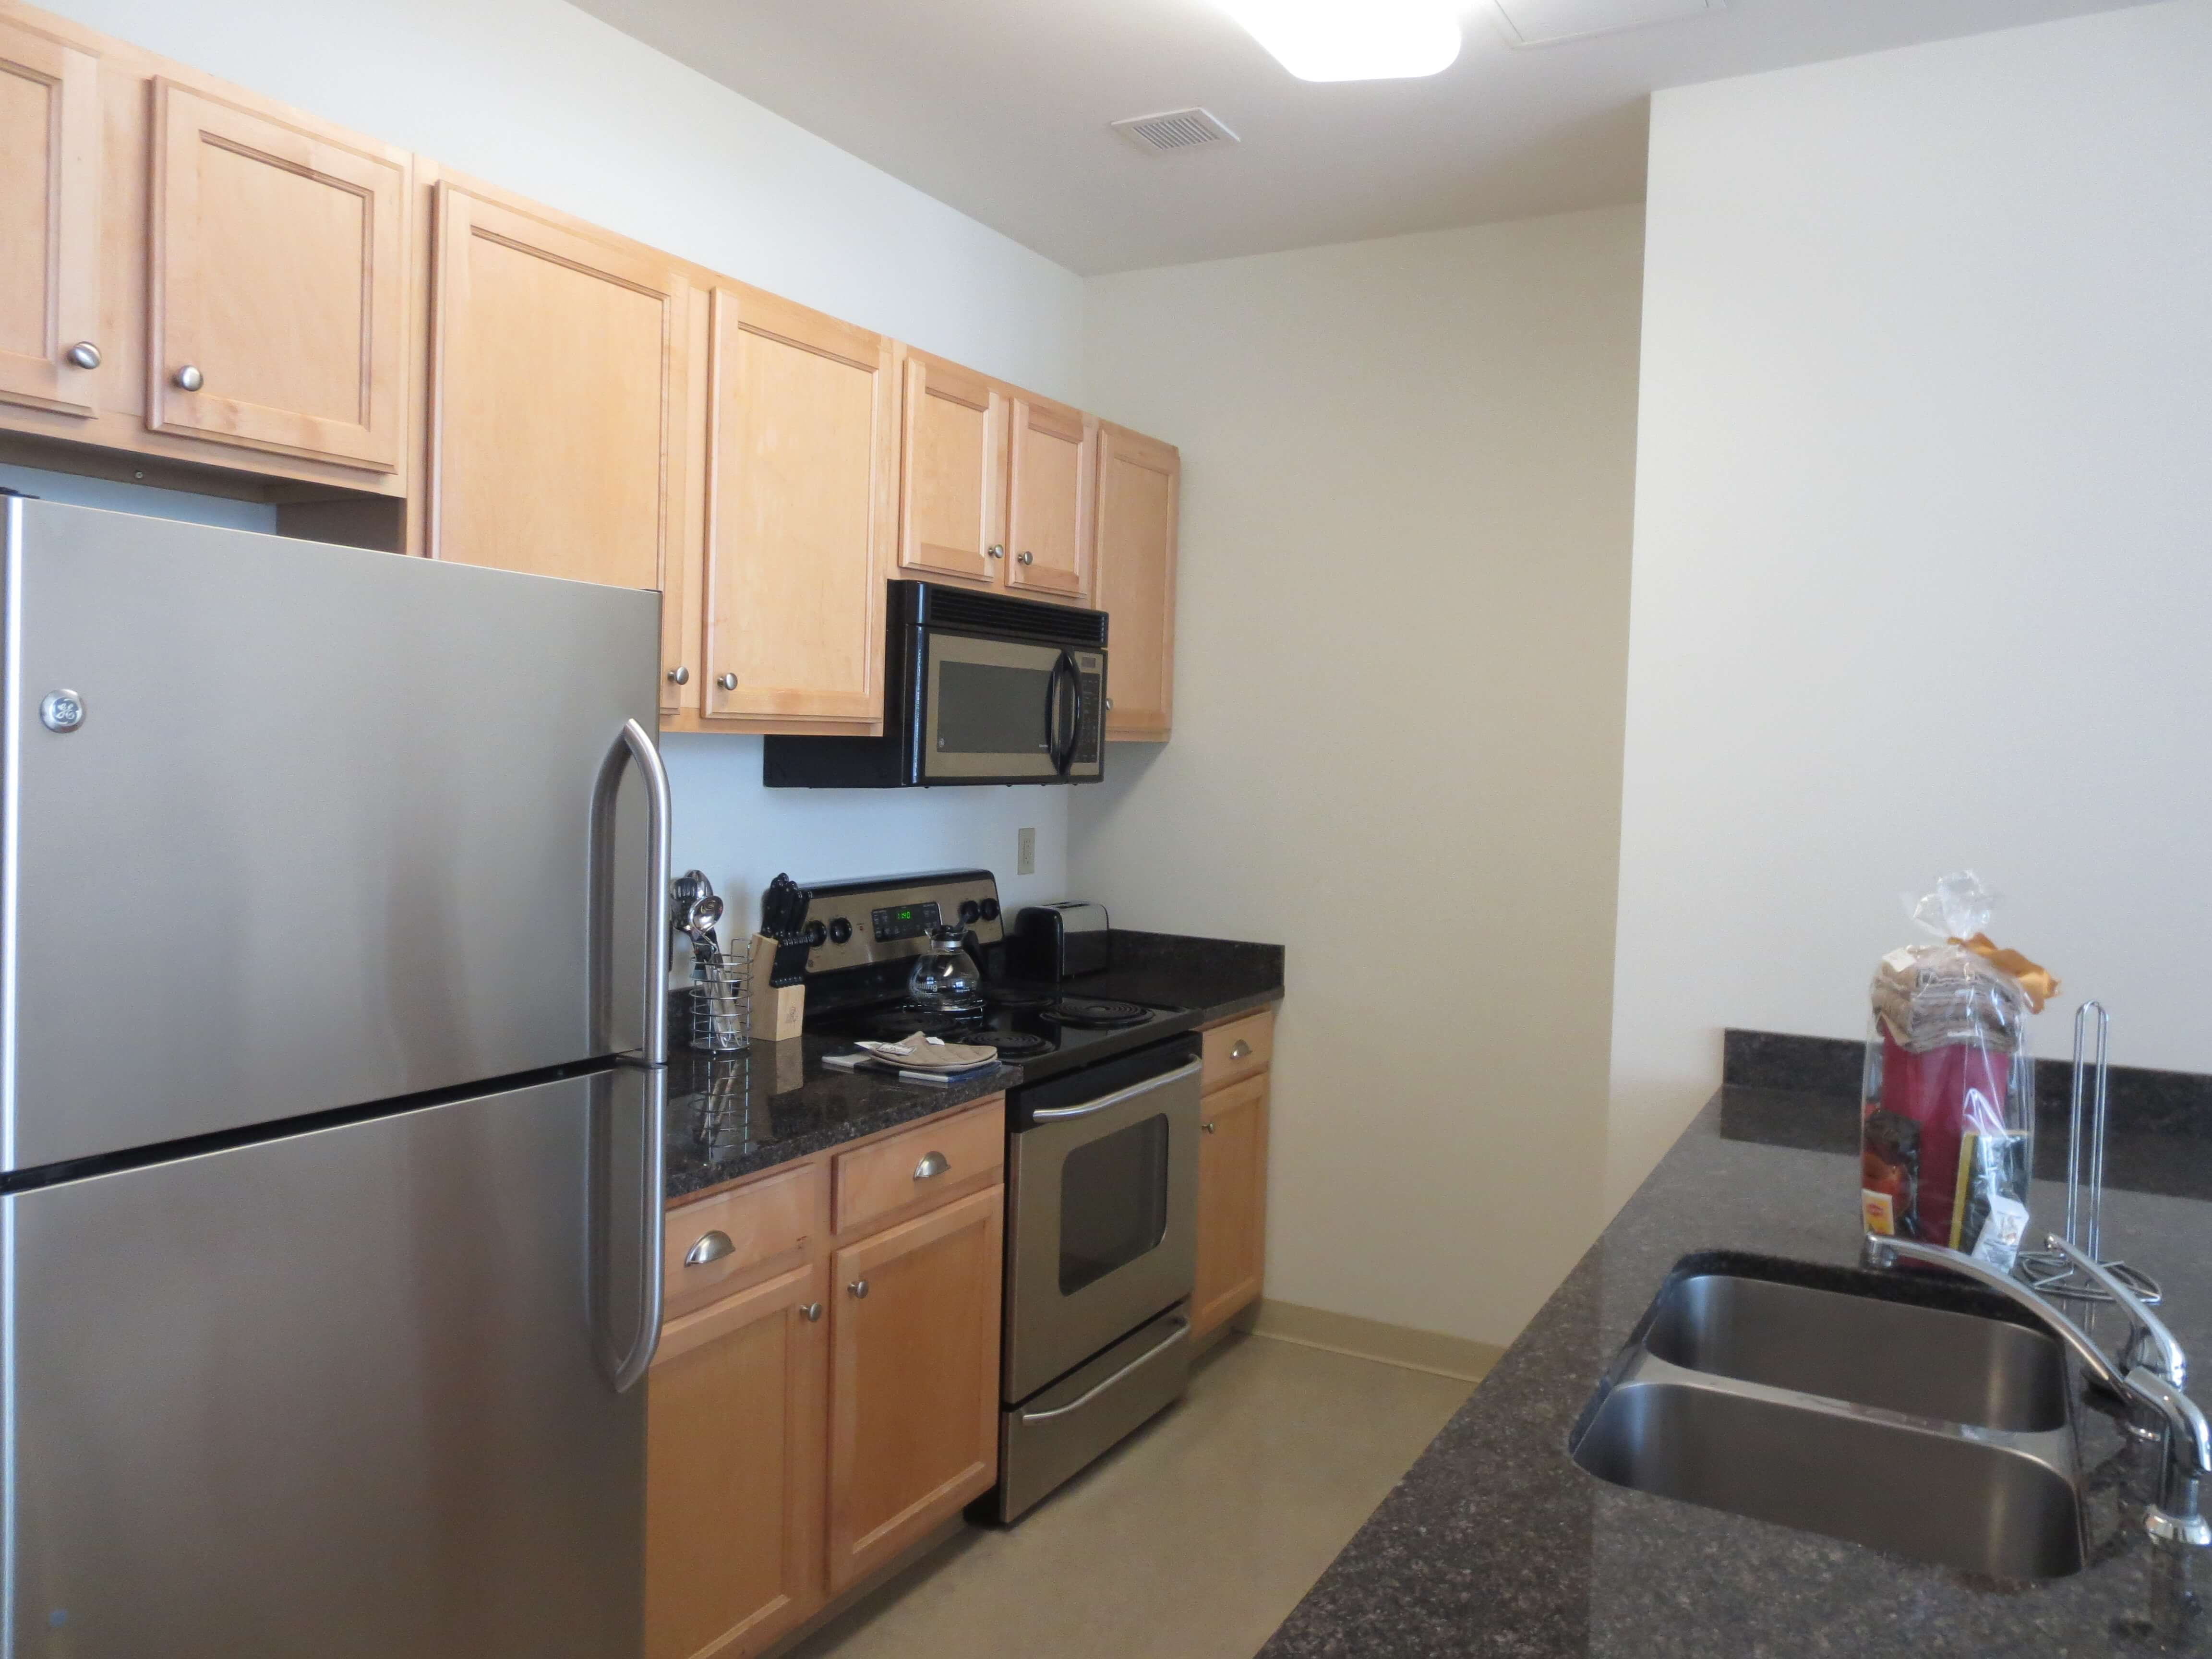 1BR Apartment for Rent on Promenade Street, Providence